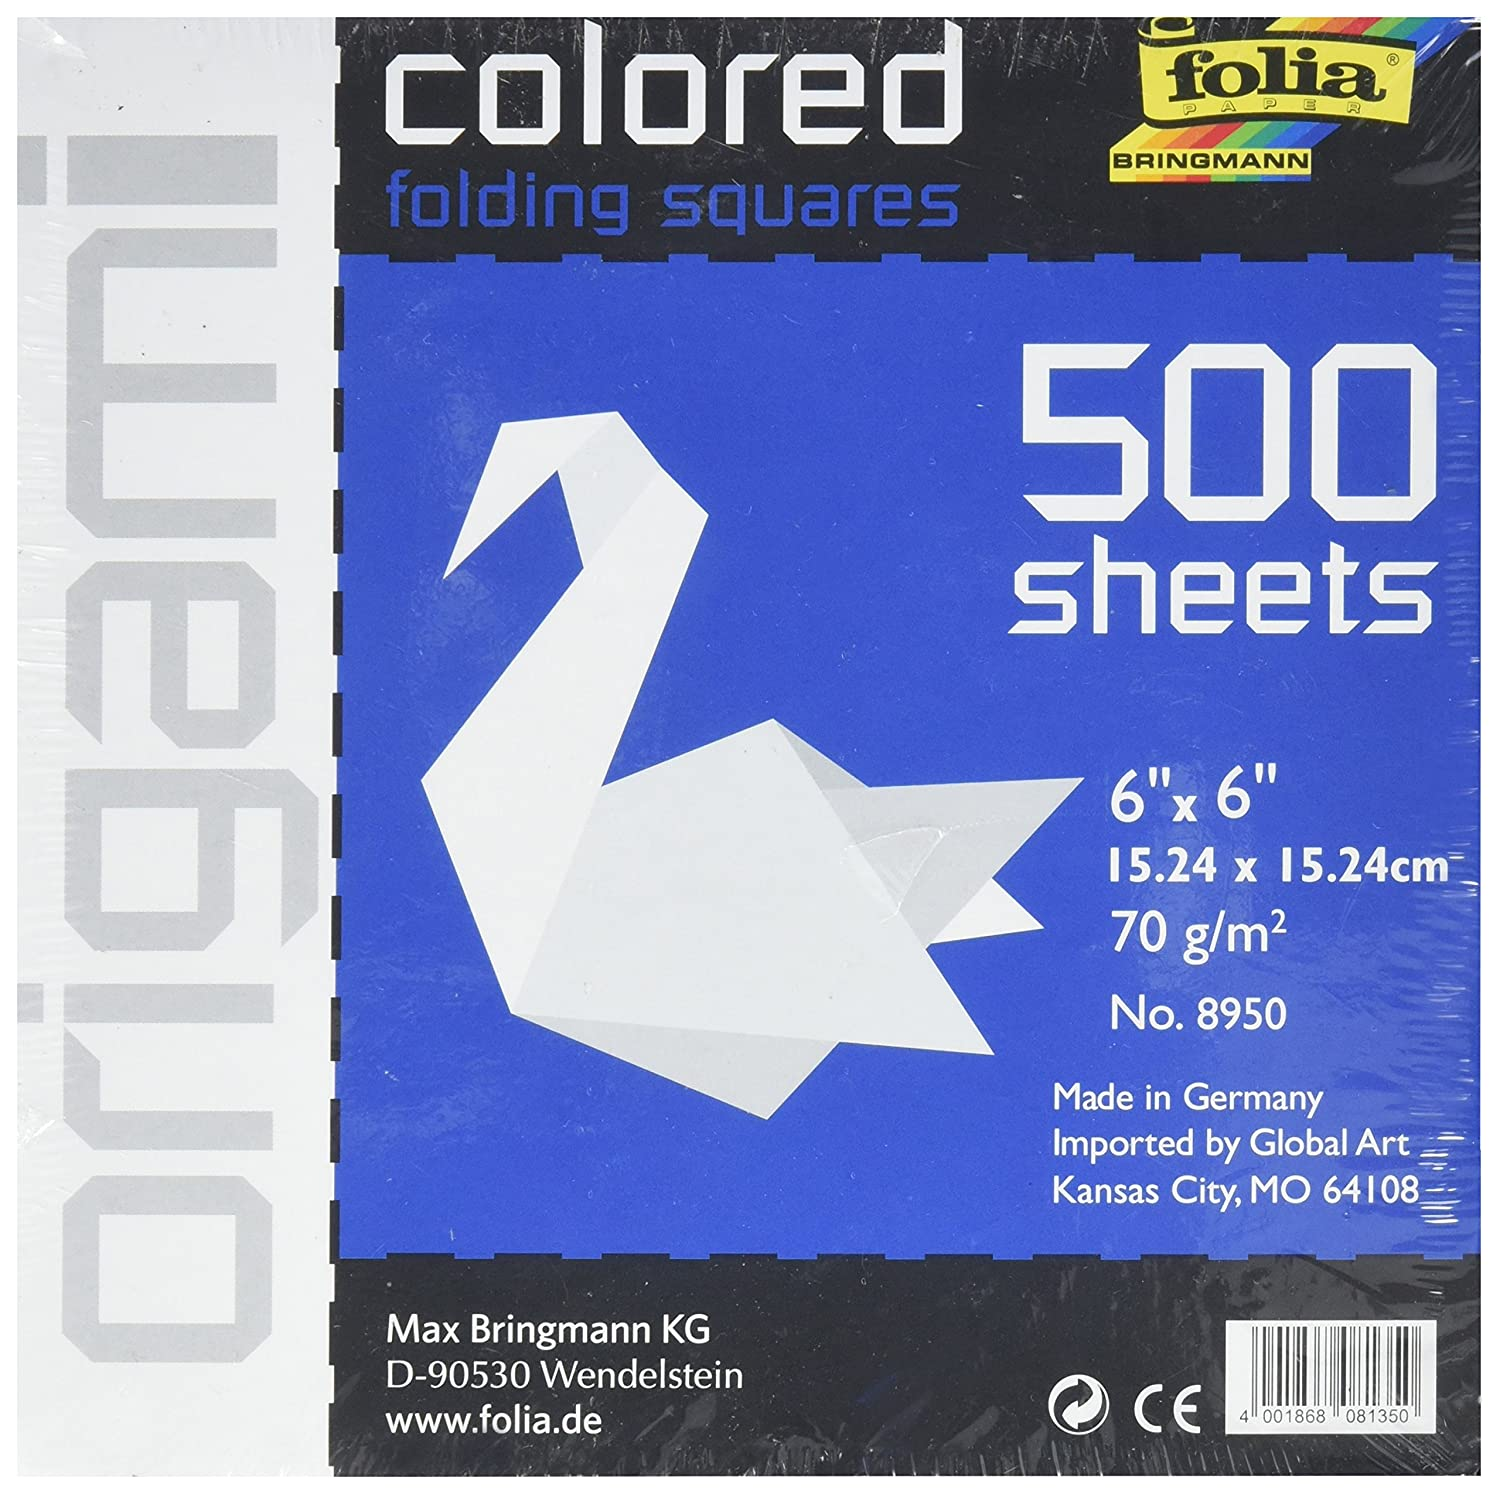 "Folia Paper Origami Colored Folding Squares 500 Sheets Size 4/""x 4/"" Ten Colors"